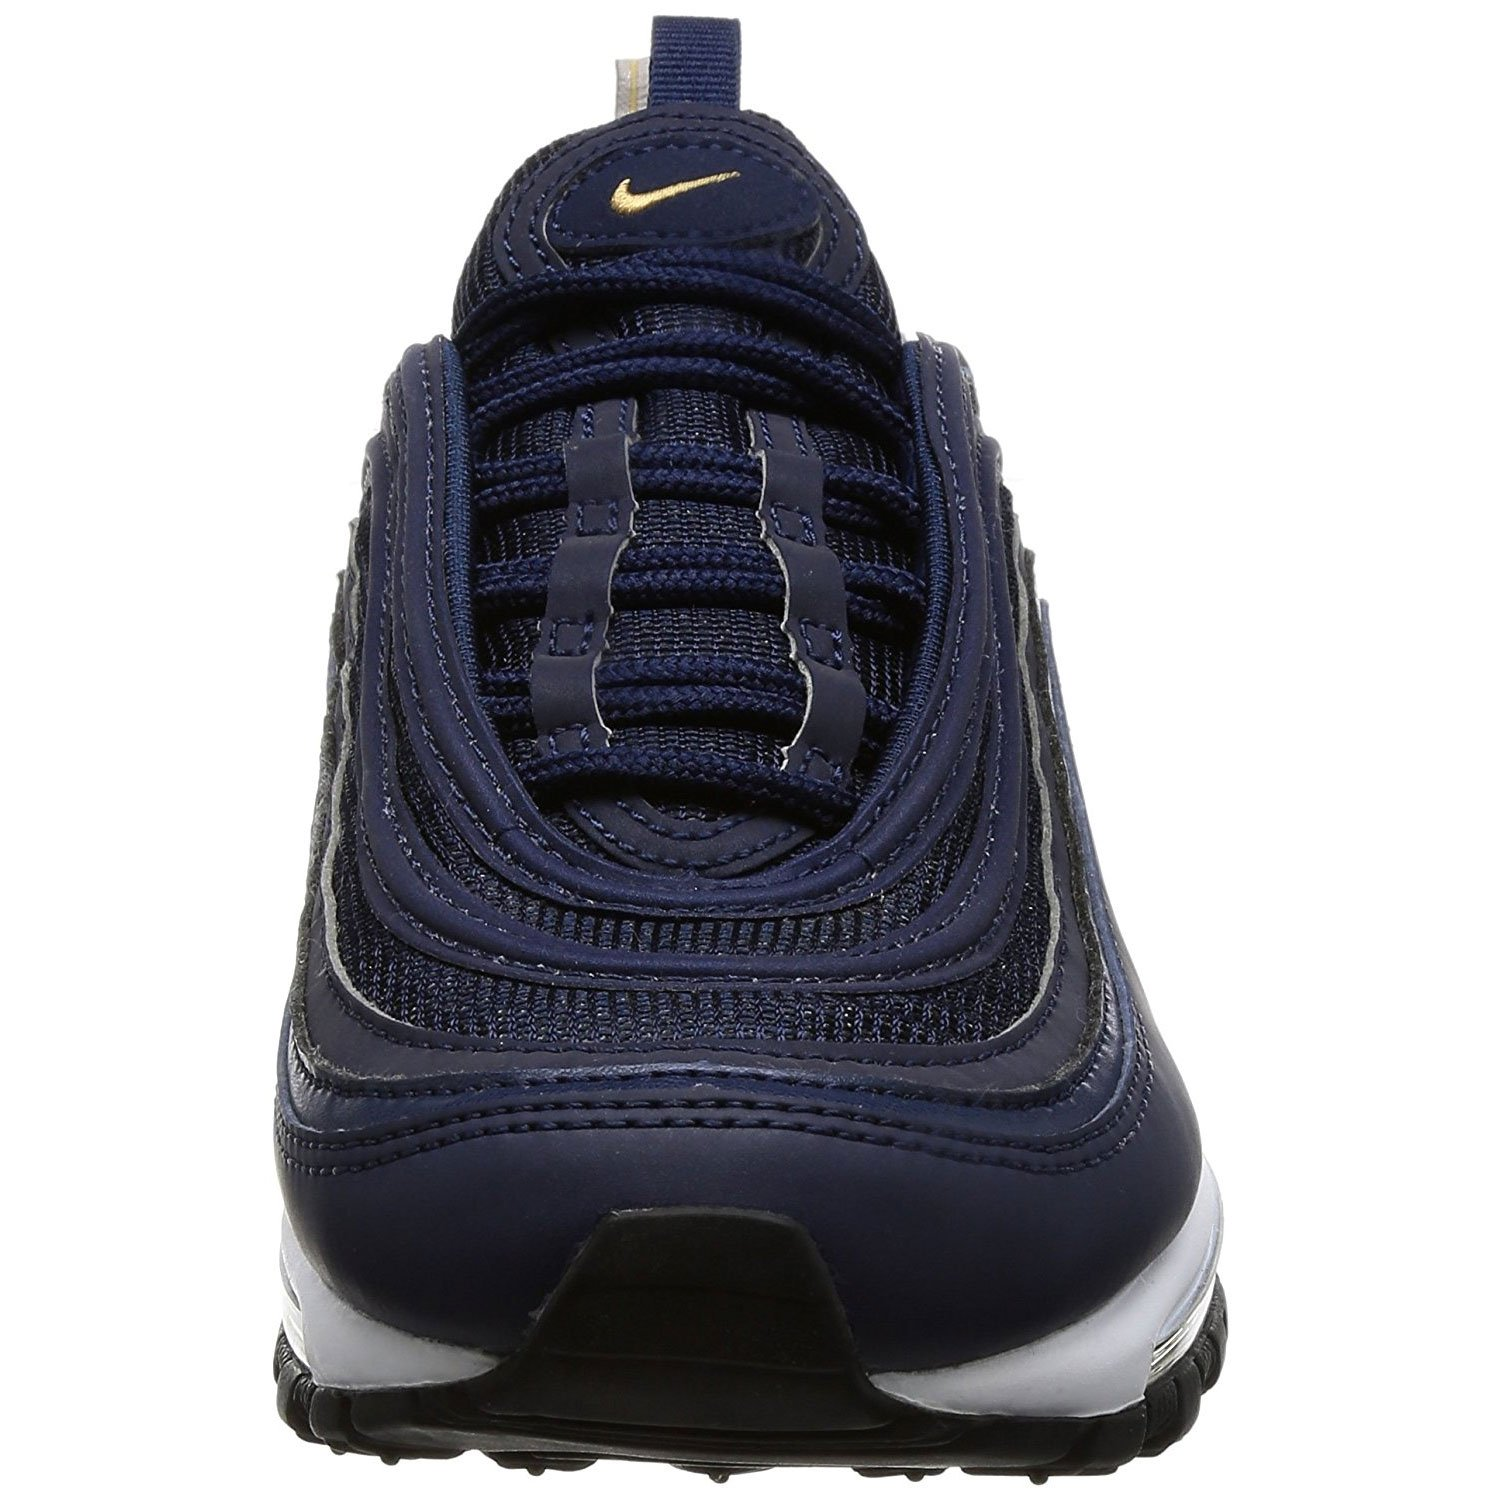 NIKE AIR MAX 97 - SIZE 12 US by NIKE (Image #2)